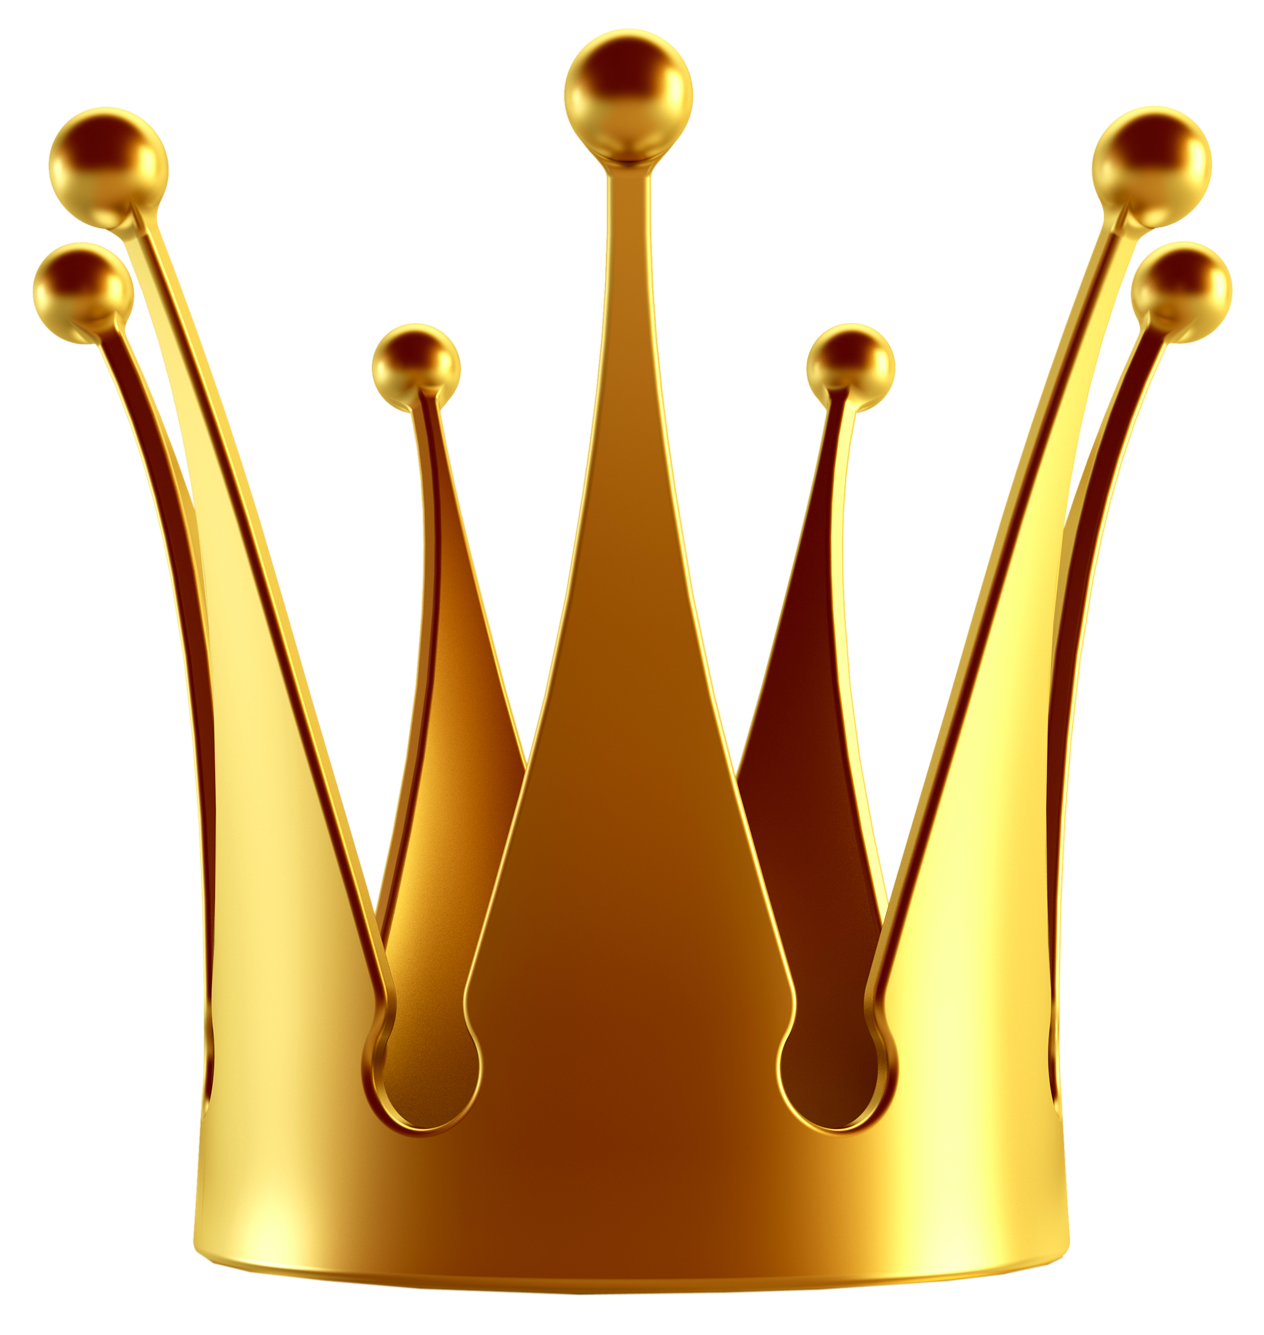 1264x1335 Gold Crown Png Clipart Pictureu200b Gallery Yopriceville